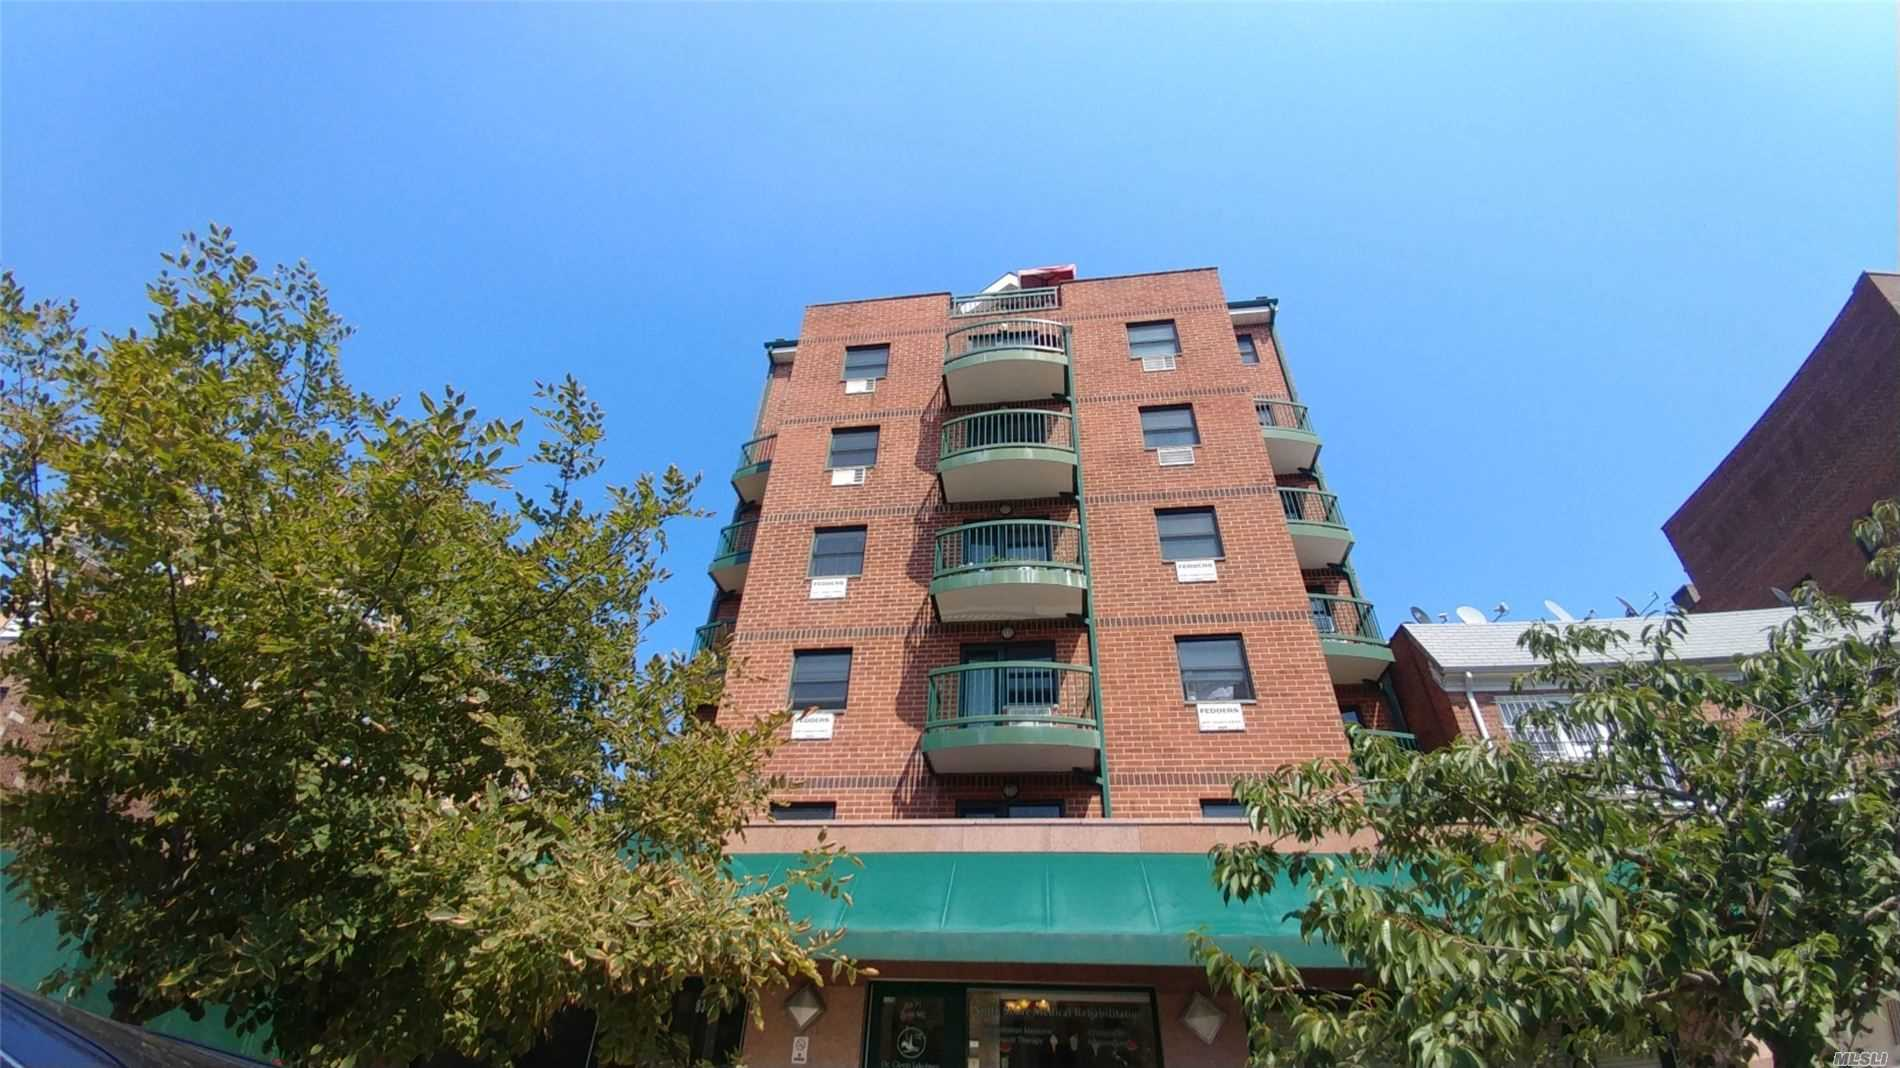 Property for sale at 83-71 116th Street # 5A, Kew Gardens NY 11415, Kew Gardens,  New York 11415